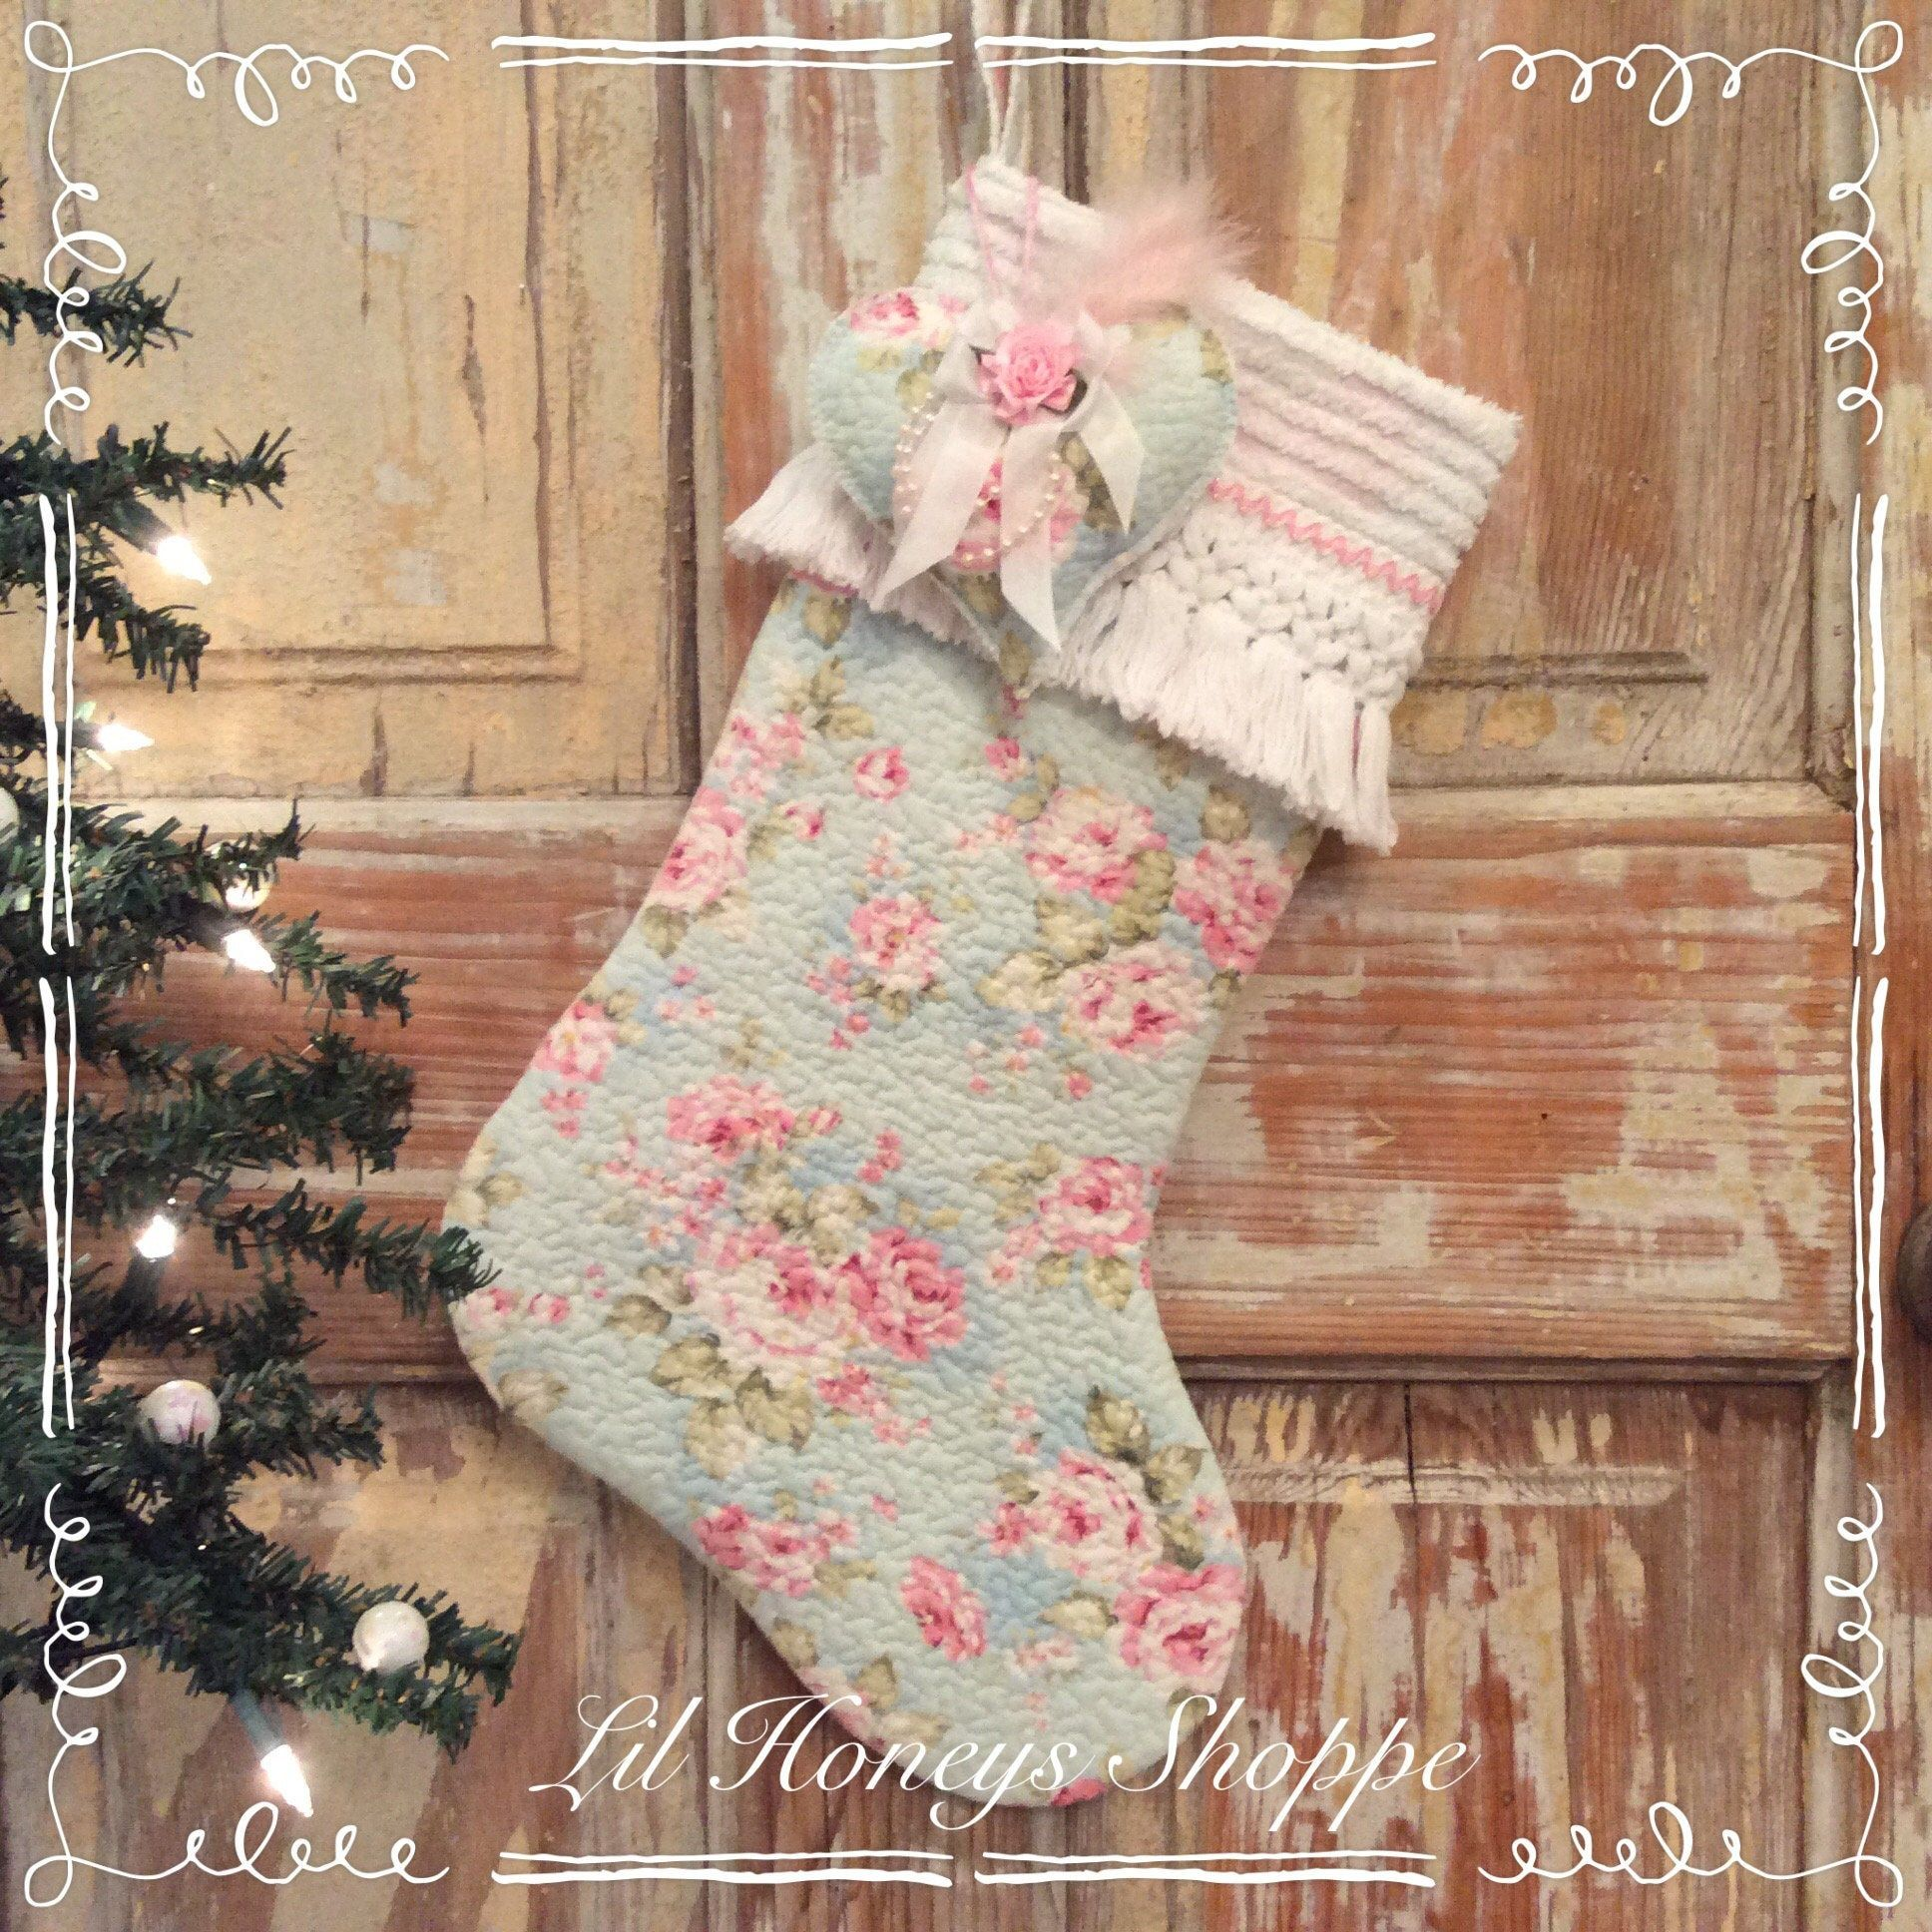 Shabby chic rose quilted Christmas stocking, cottage